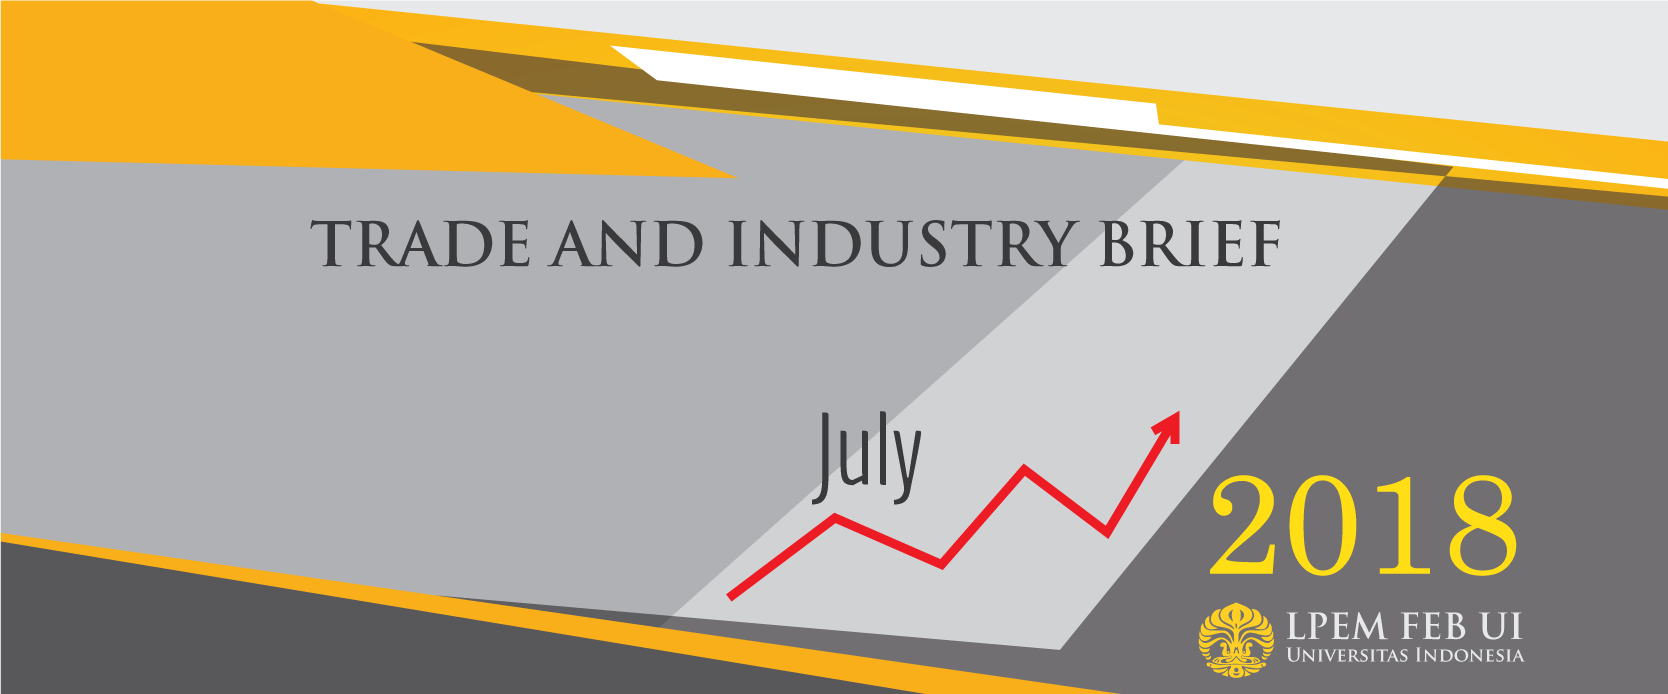 SERI ANALISIS EKONOMI: TRADE AND INDUSTRY BRIEF, Juli 2018